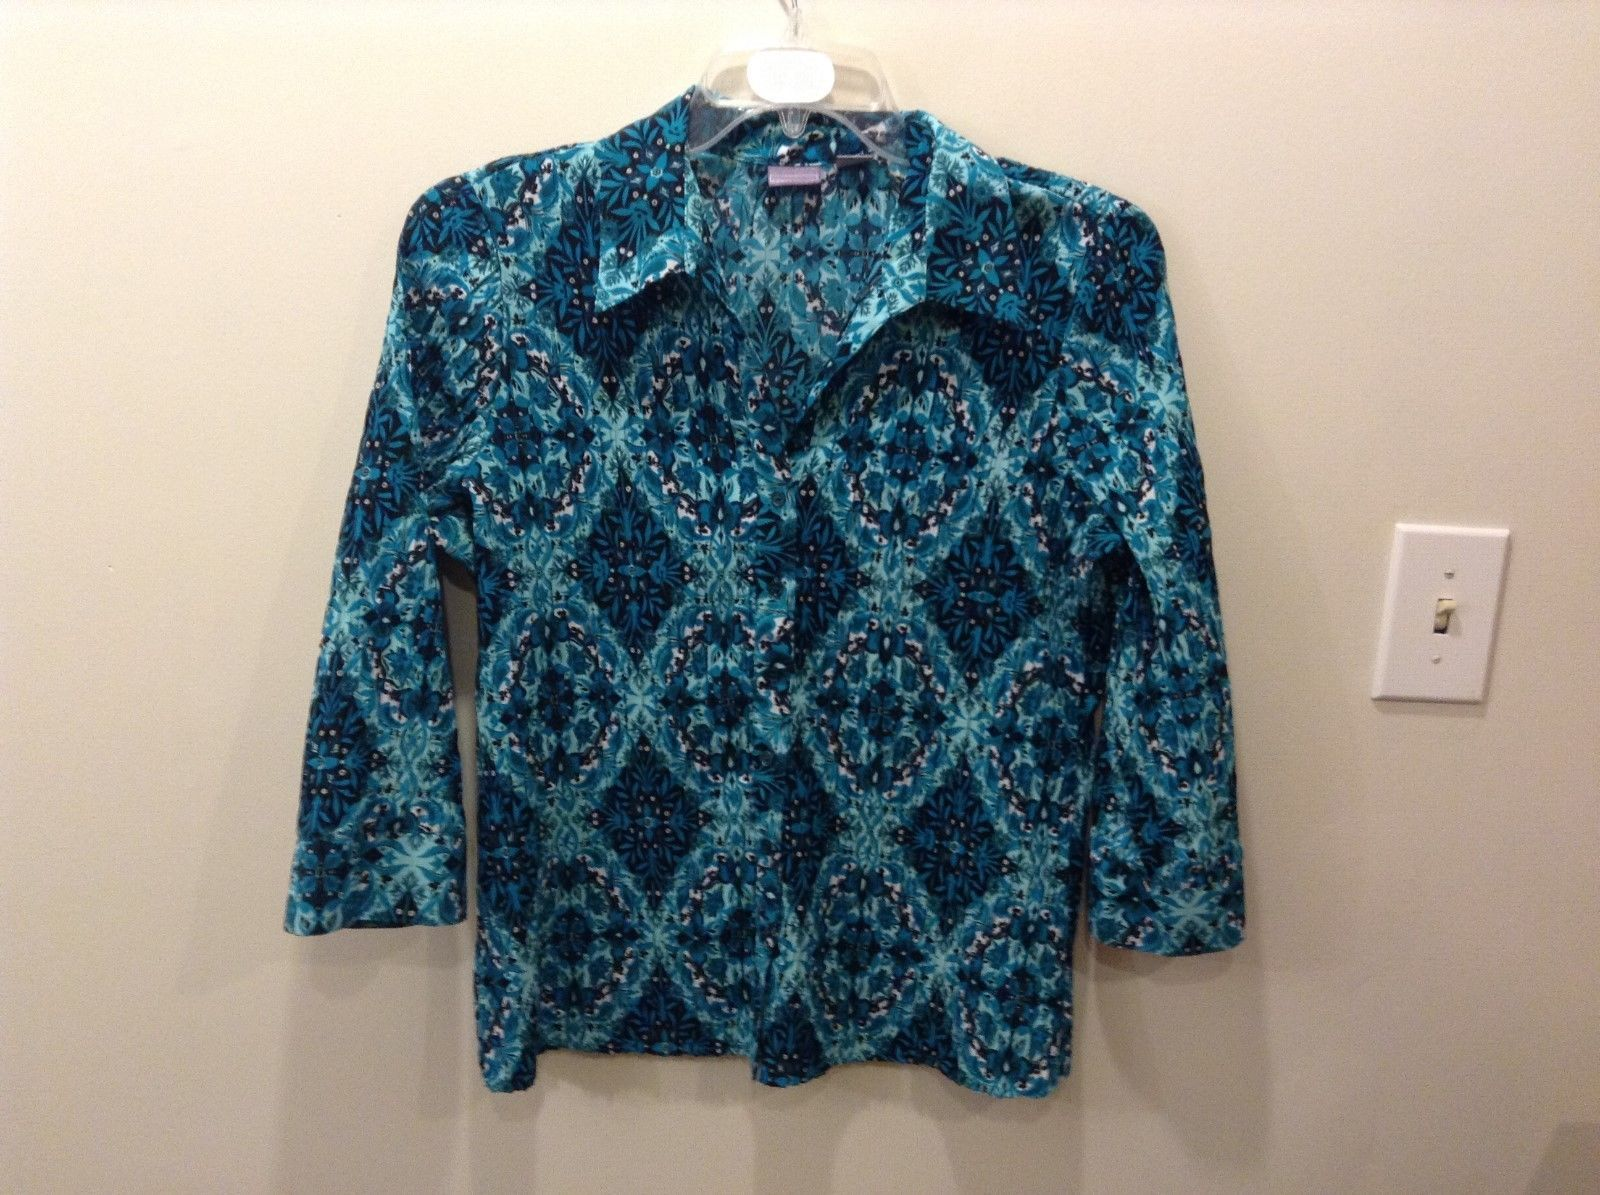 Laura Scott Blue Patterned Blouse Ribbed w/ Floral/Abstract Design XL/EG